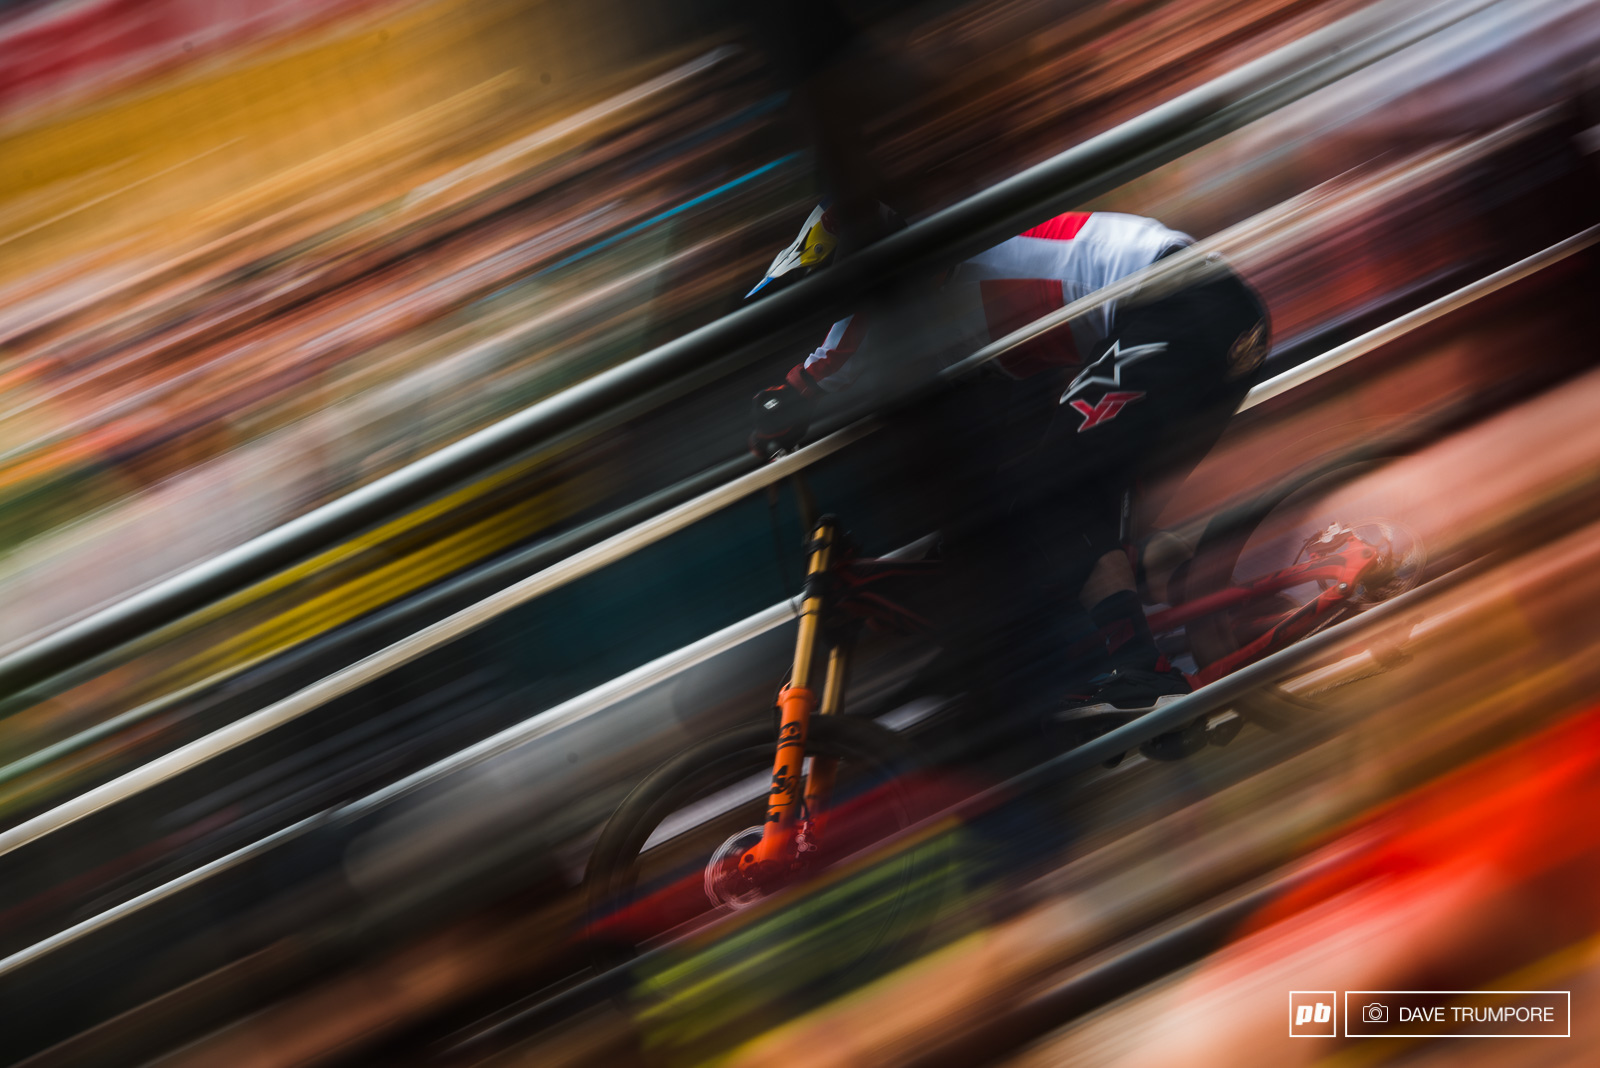 Warp Speed for Aaron Gwin as he heads into the finish arena.